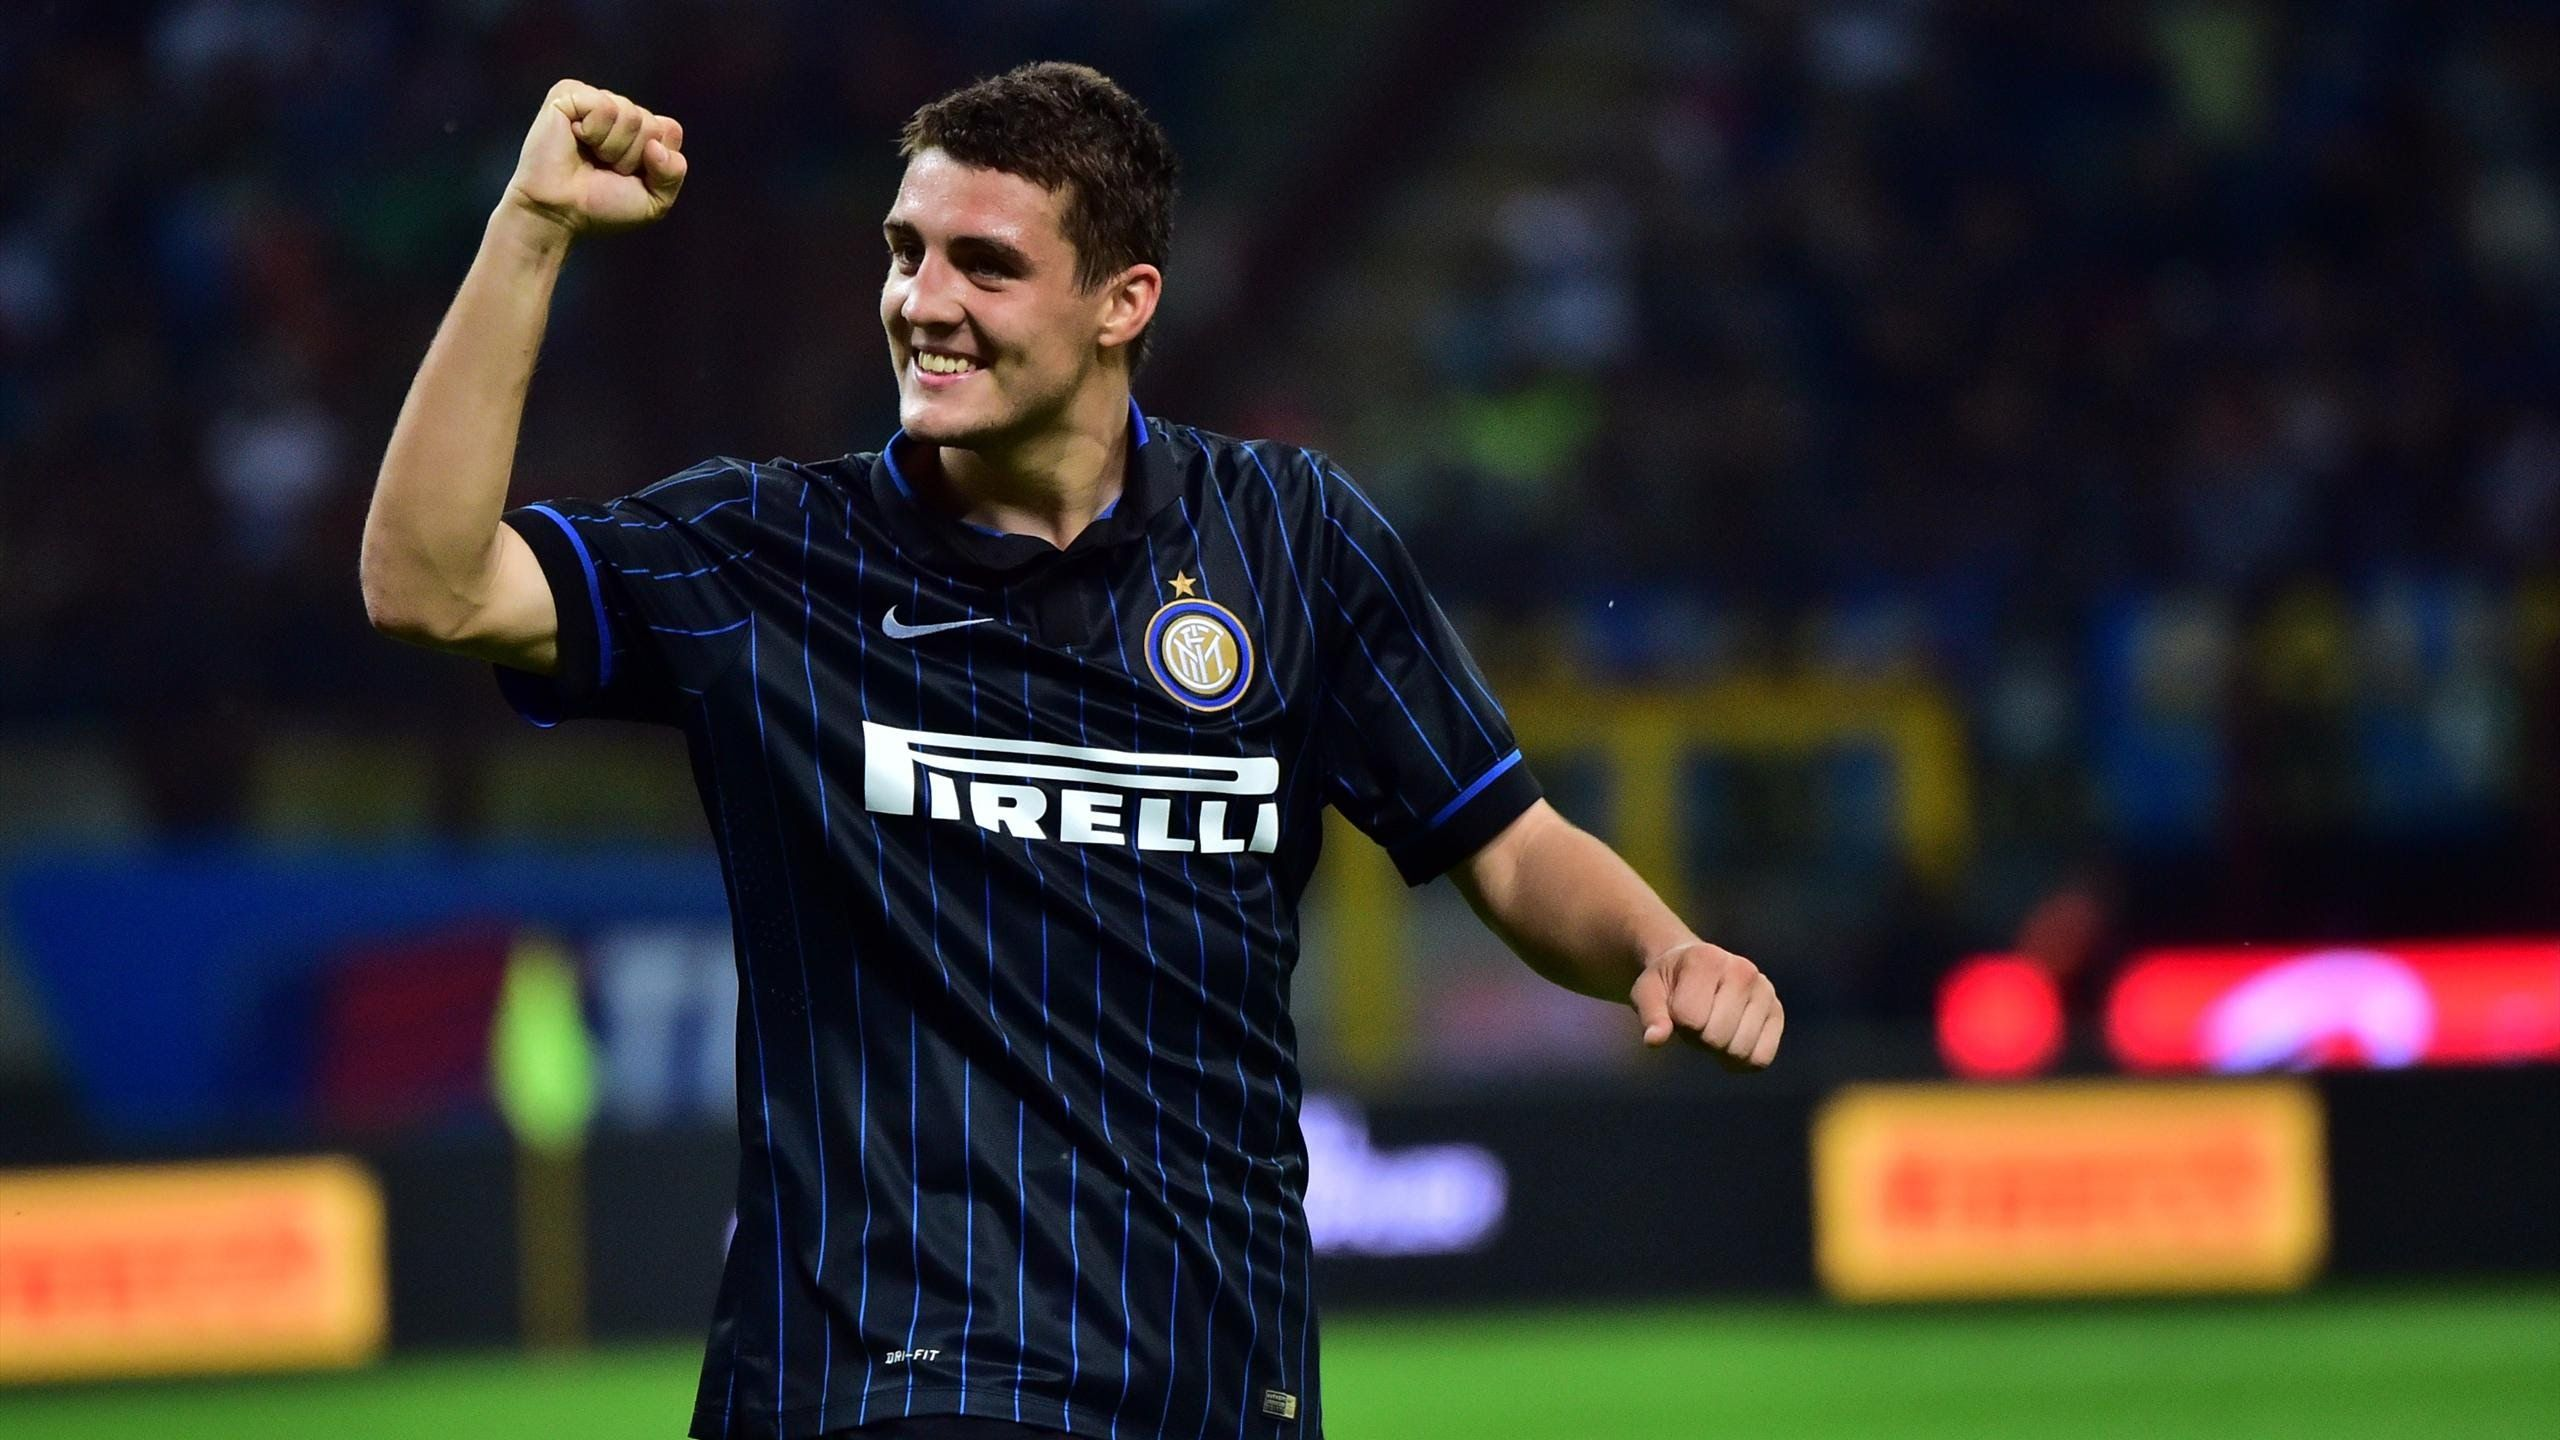 Mateo Kovacic | Il Professore | Skills and Goals 2014-2015 - YouTube